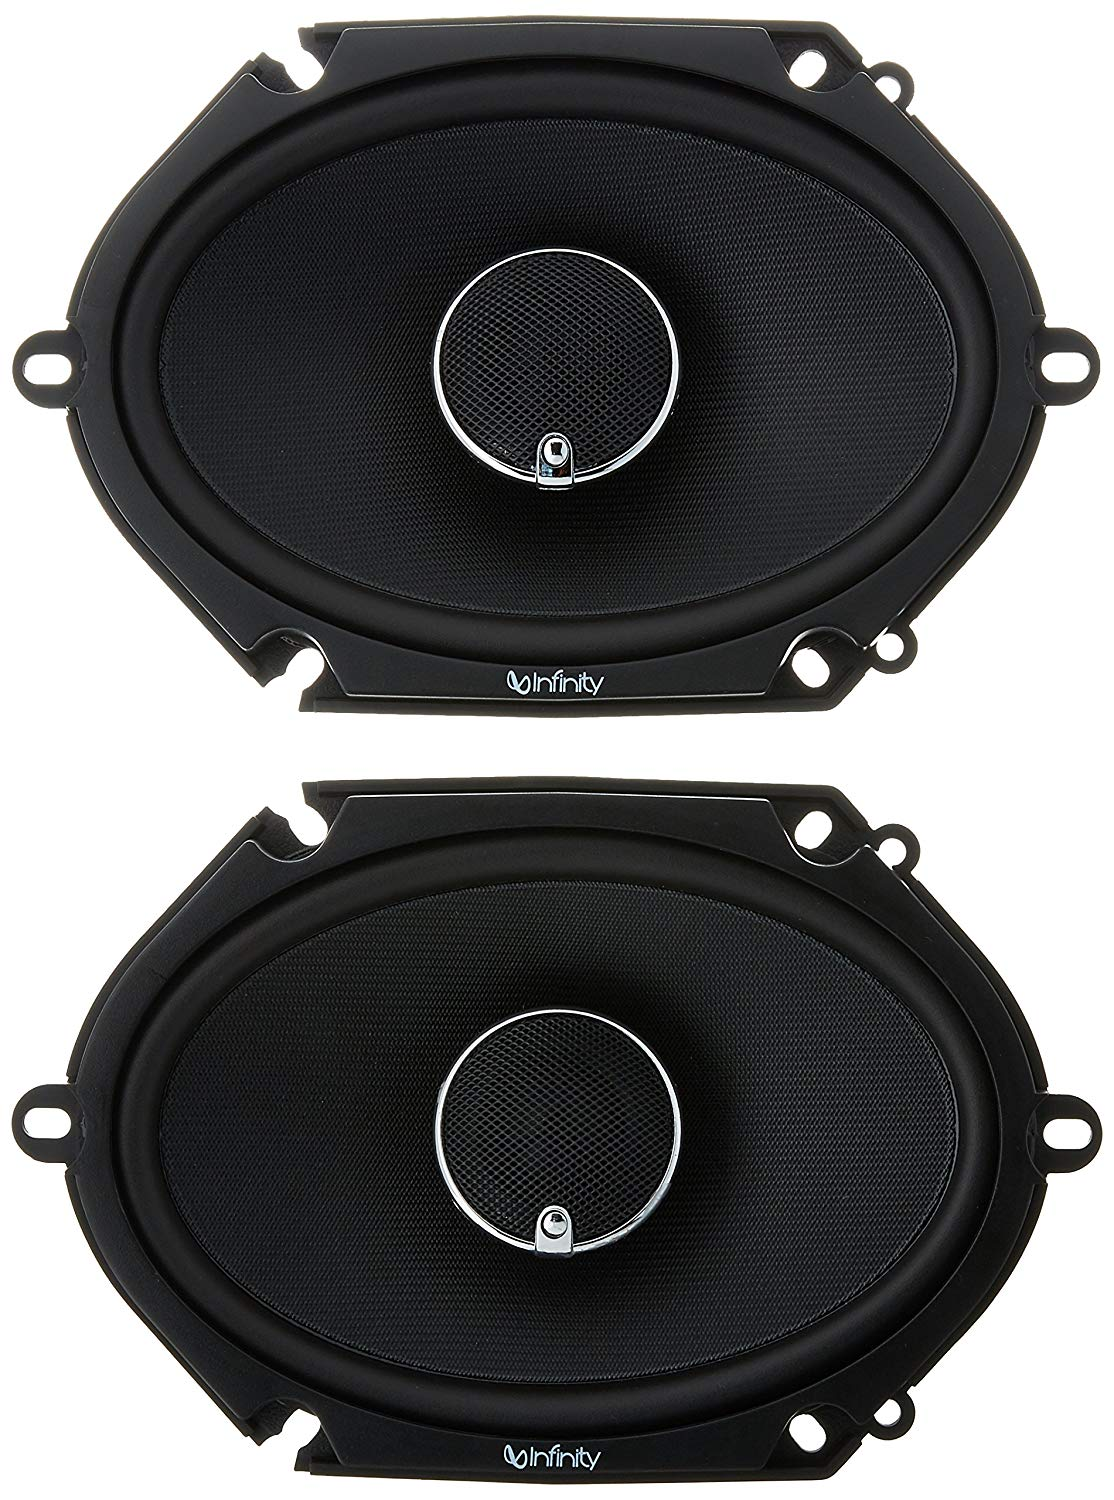 "Infinity KAPPA 682.11cf Peak Power Handling 300w 6""x8""/5""x7"" Two Way Car Audio"